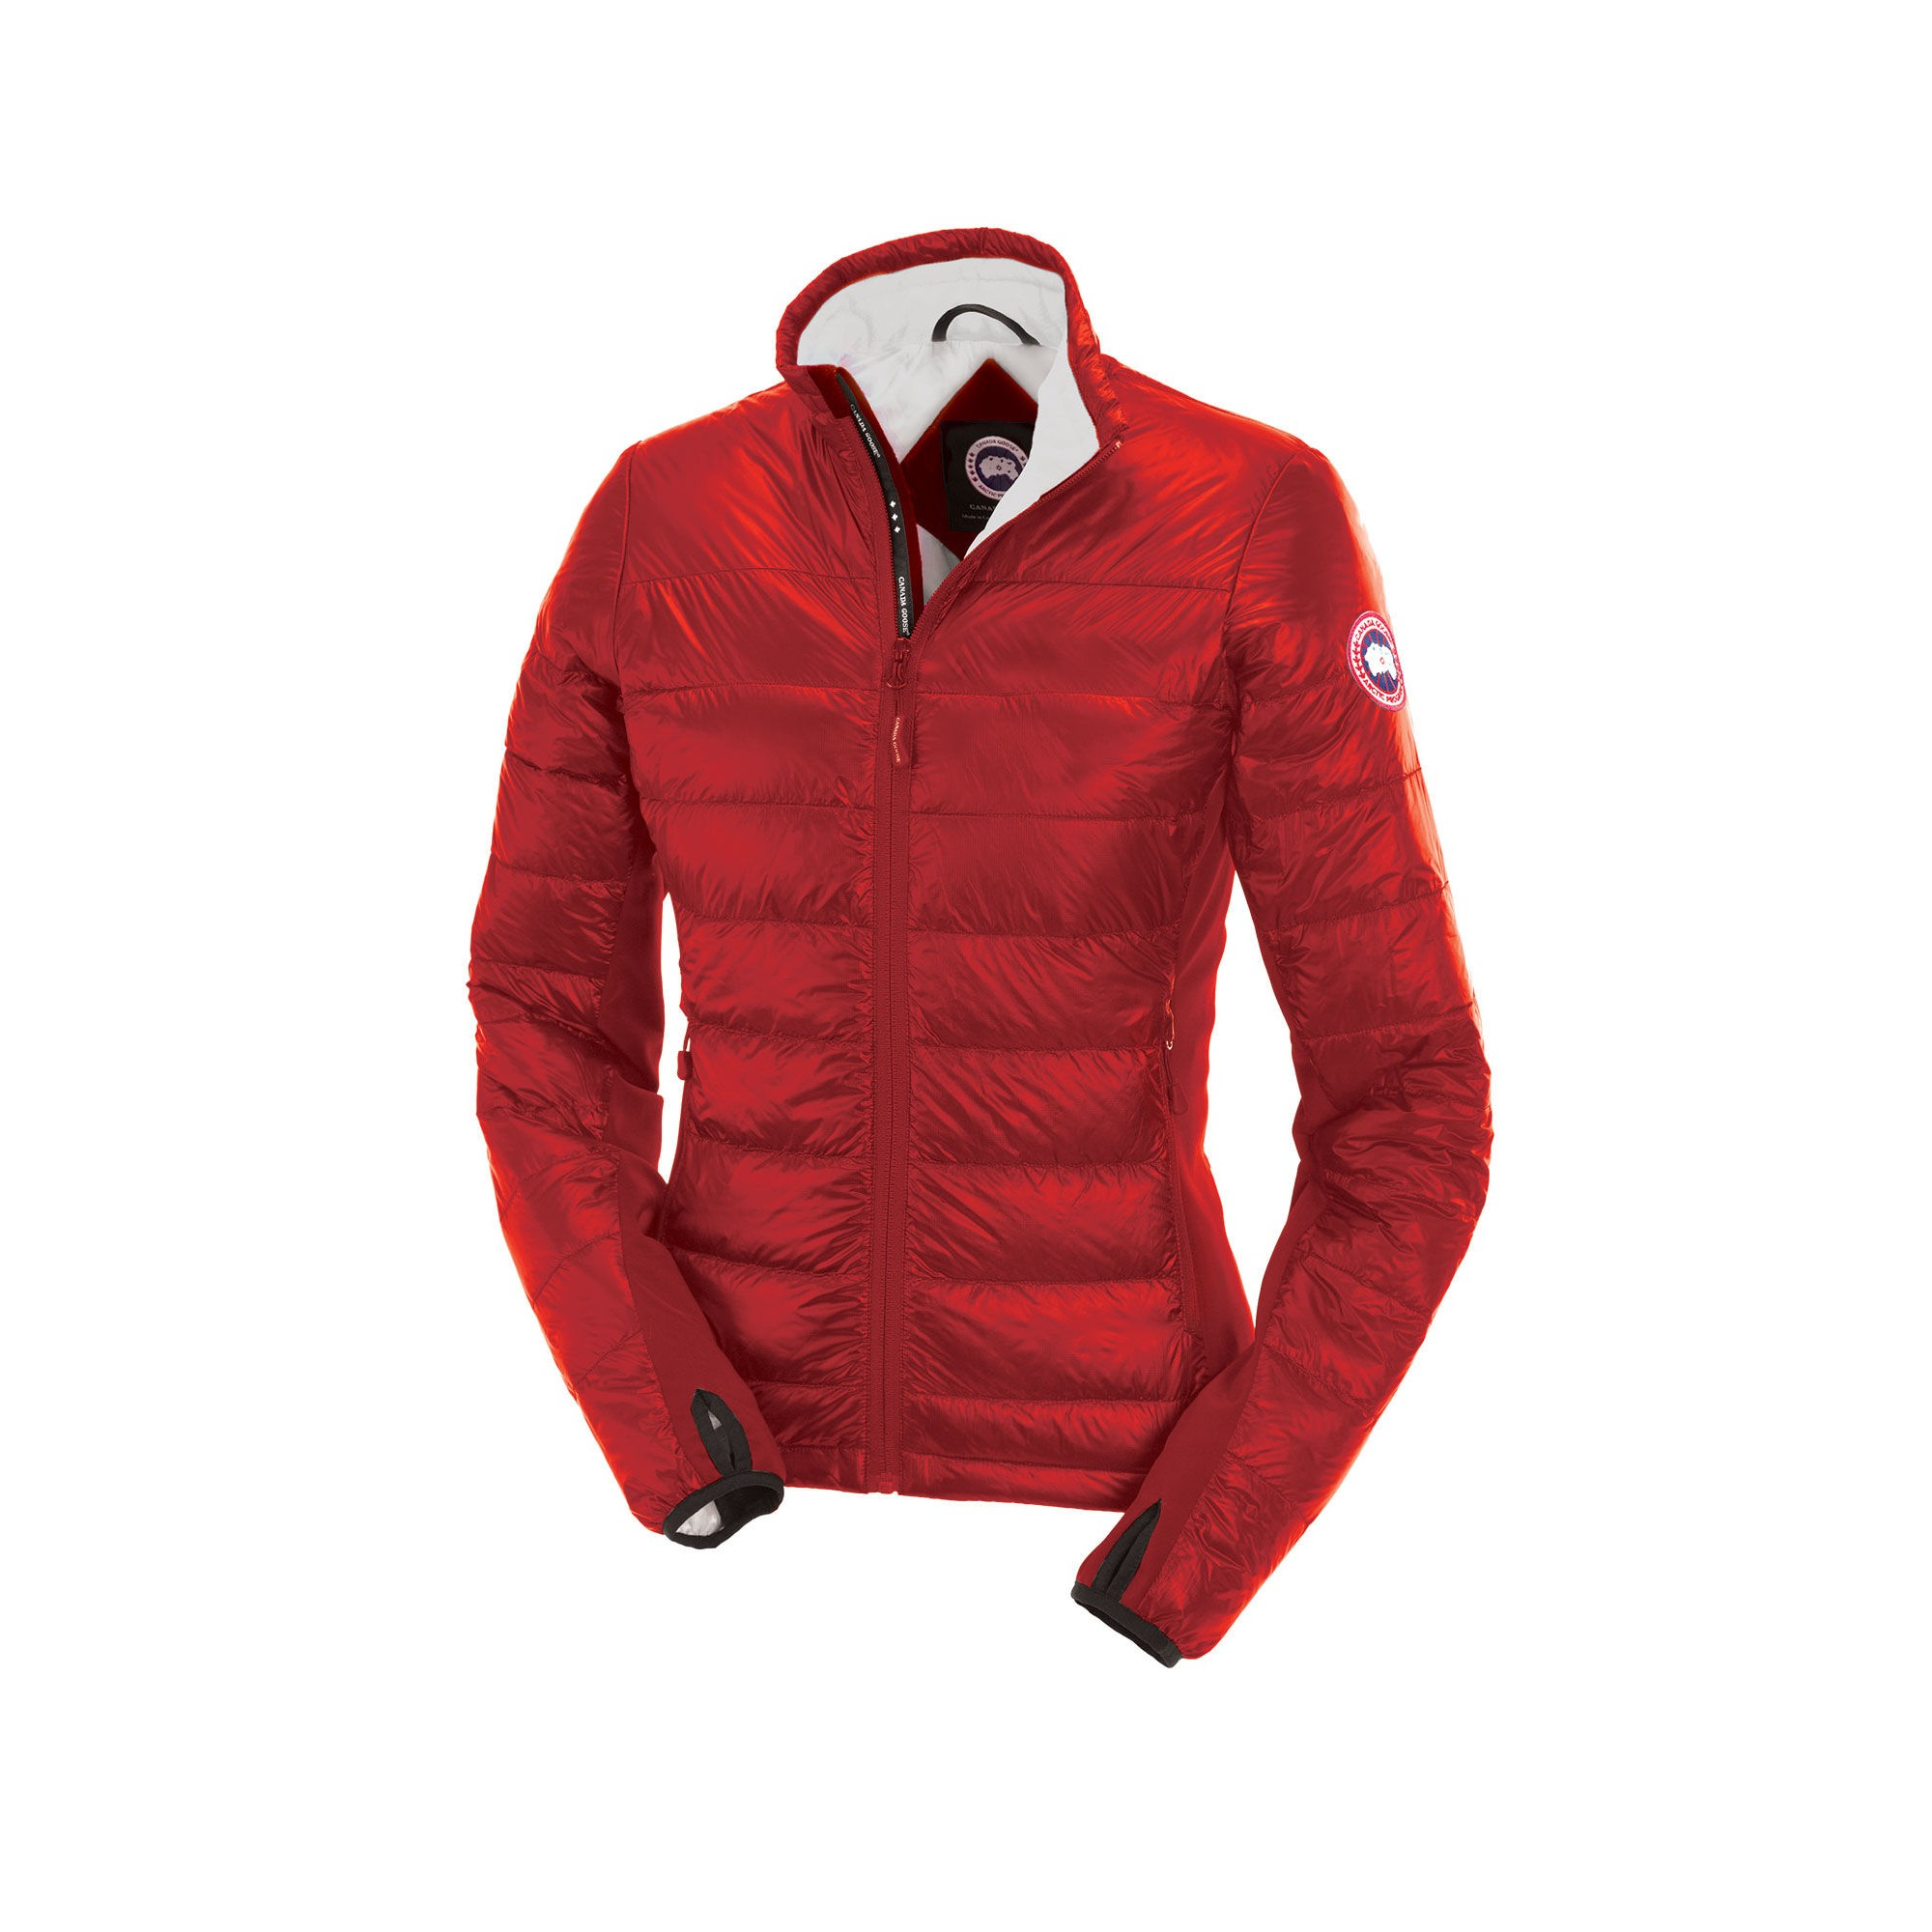 CANADA GOOSE HYBRIDGE LITE JACKET Red WOMENS 2701L 4a1225958